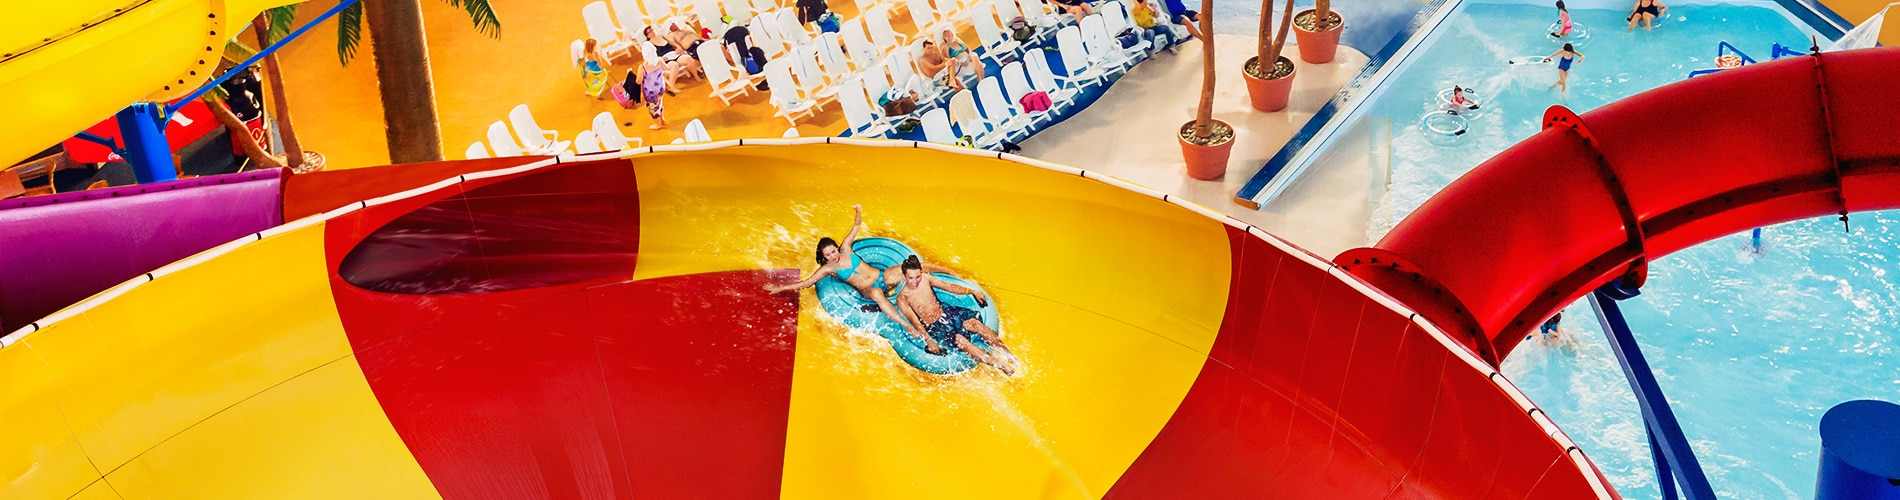 Fallsview Indoor Waterpark Plunge Bowl